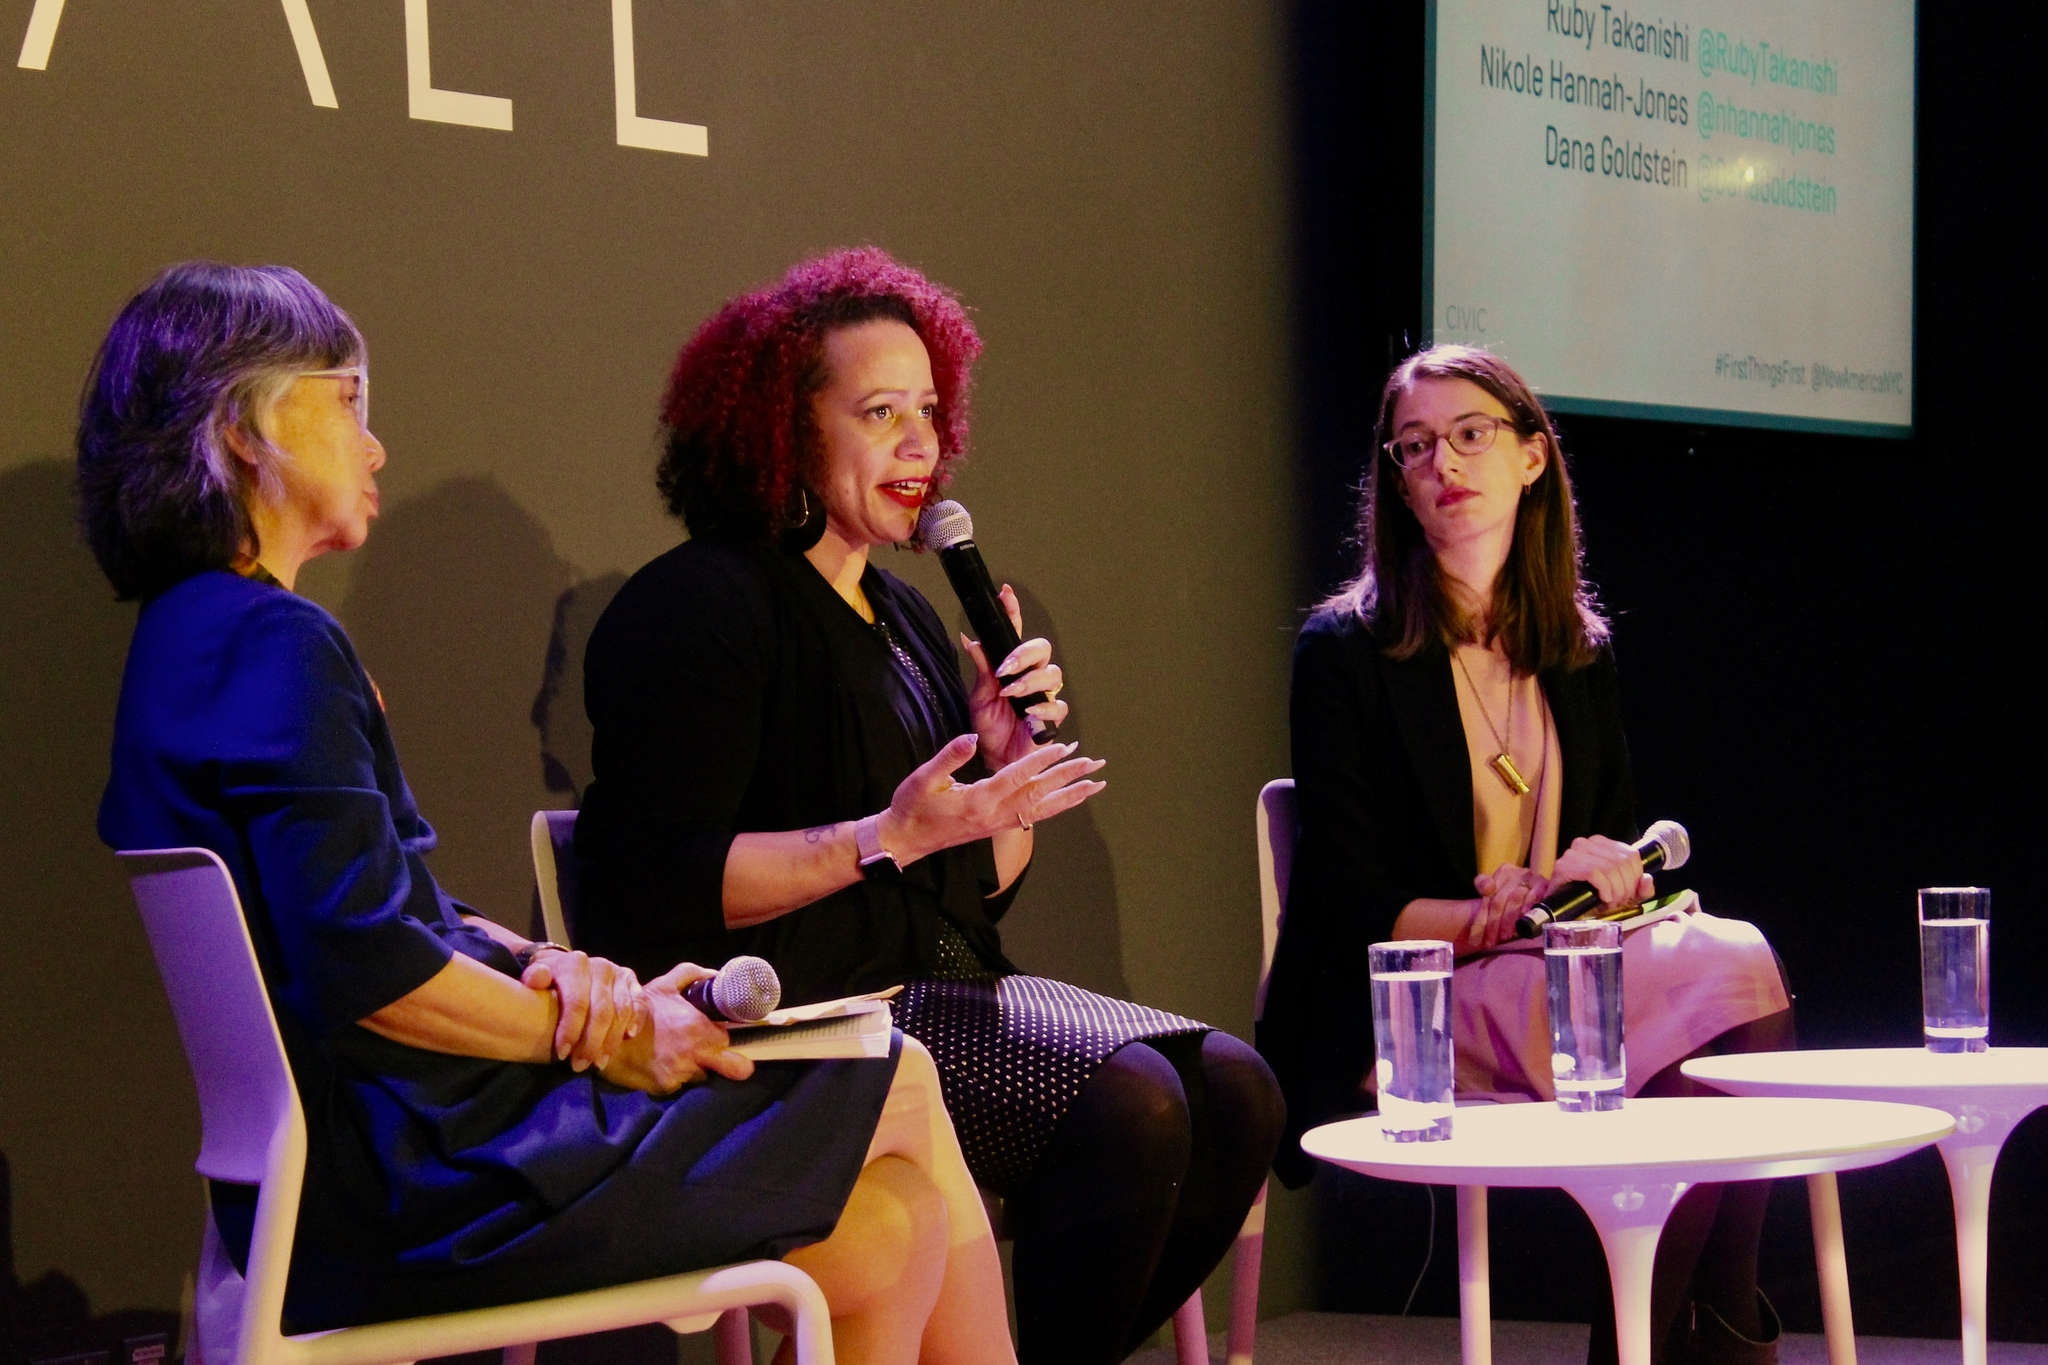 Nikole Hannah-Jones (center)at  Worlds Apart: Redesigning Primary Education in a Divided Society  in 2016.Photo credit: New America [ CC BY 2.0 ],  via Flickr